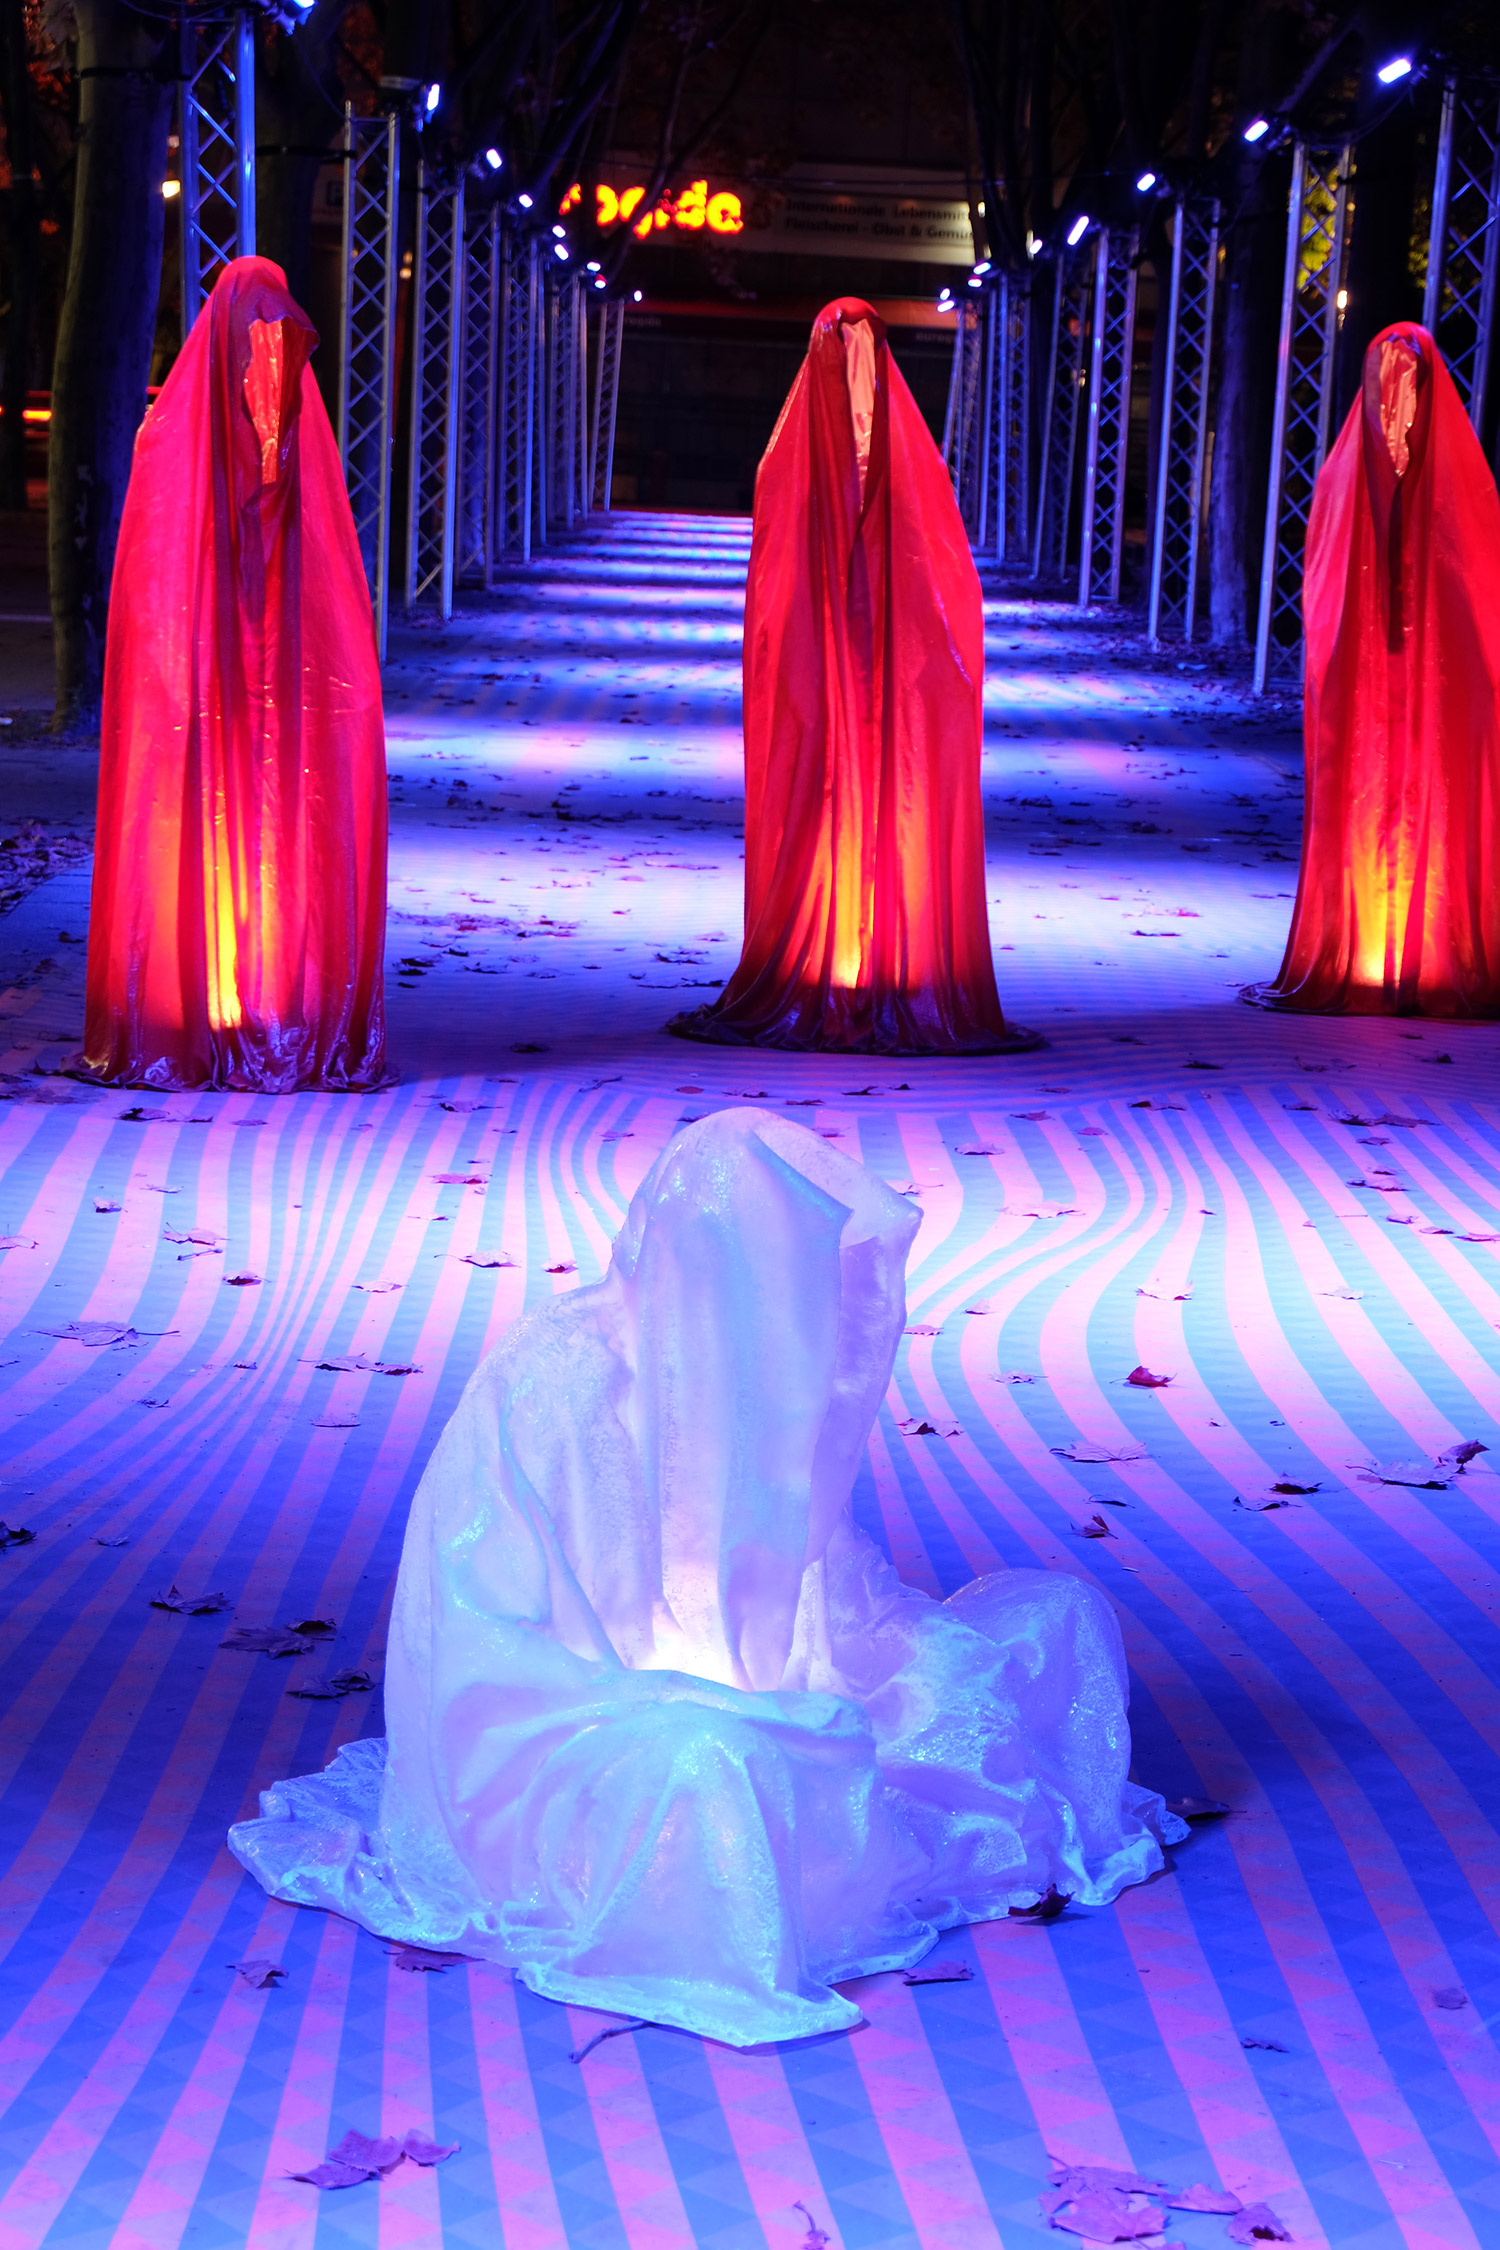 festival-of-lights-berlin-light-art-show-ilumination-lumina-glow-fine-art-modern-design-contemporary-sculpture-statue-ghost-faceless-9162